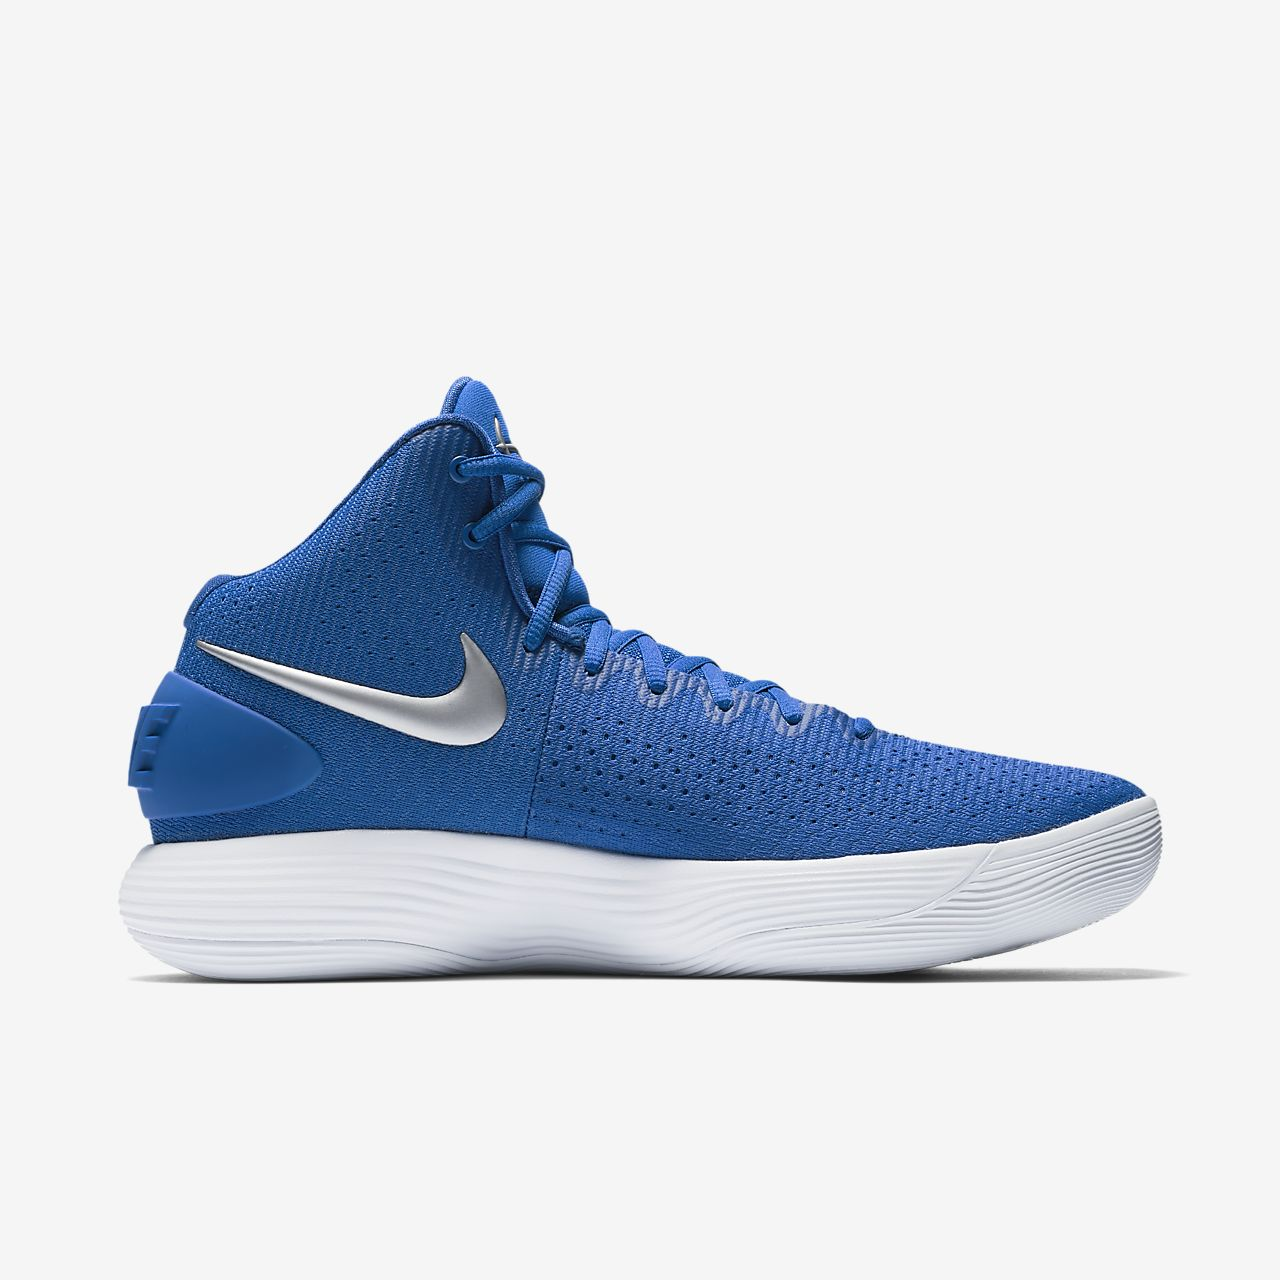 ... Nike Hyperdunk 2017 (Team) Basketball Shoe